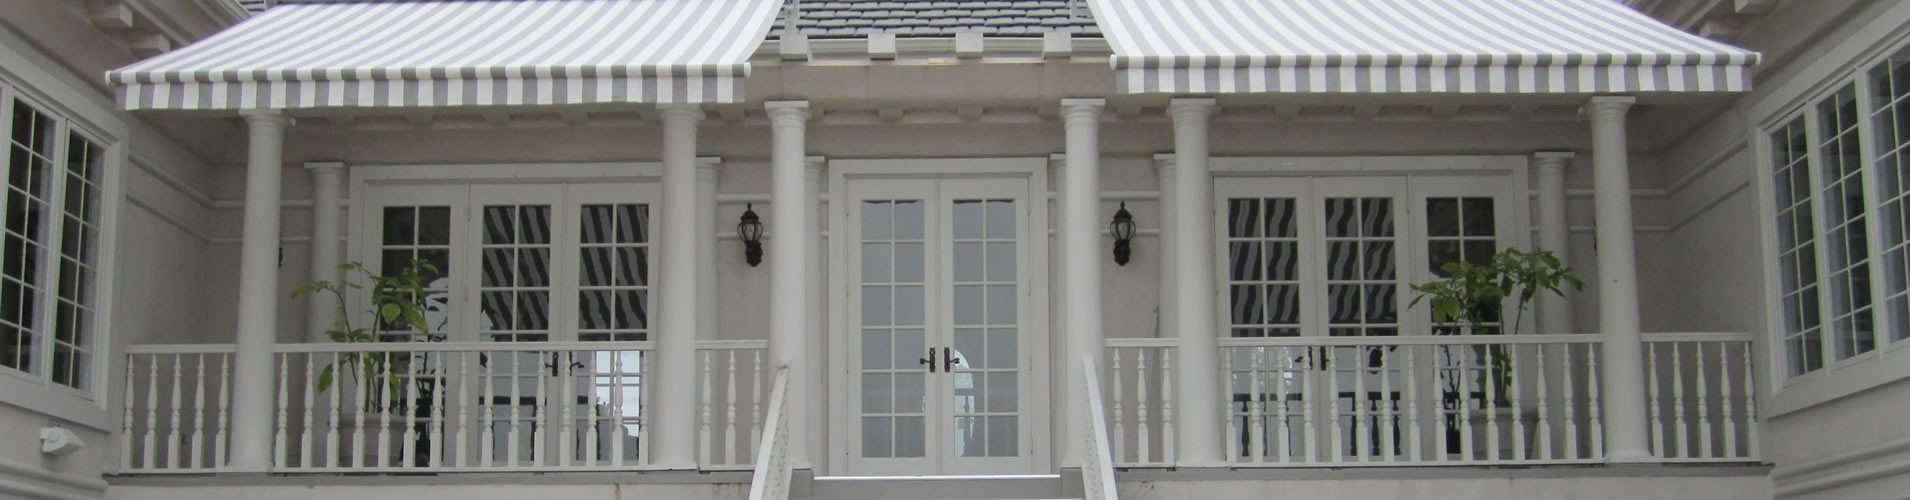 Awnings for San Antonio porch